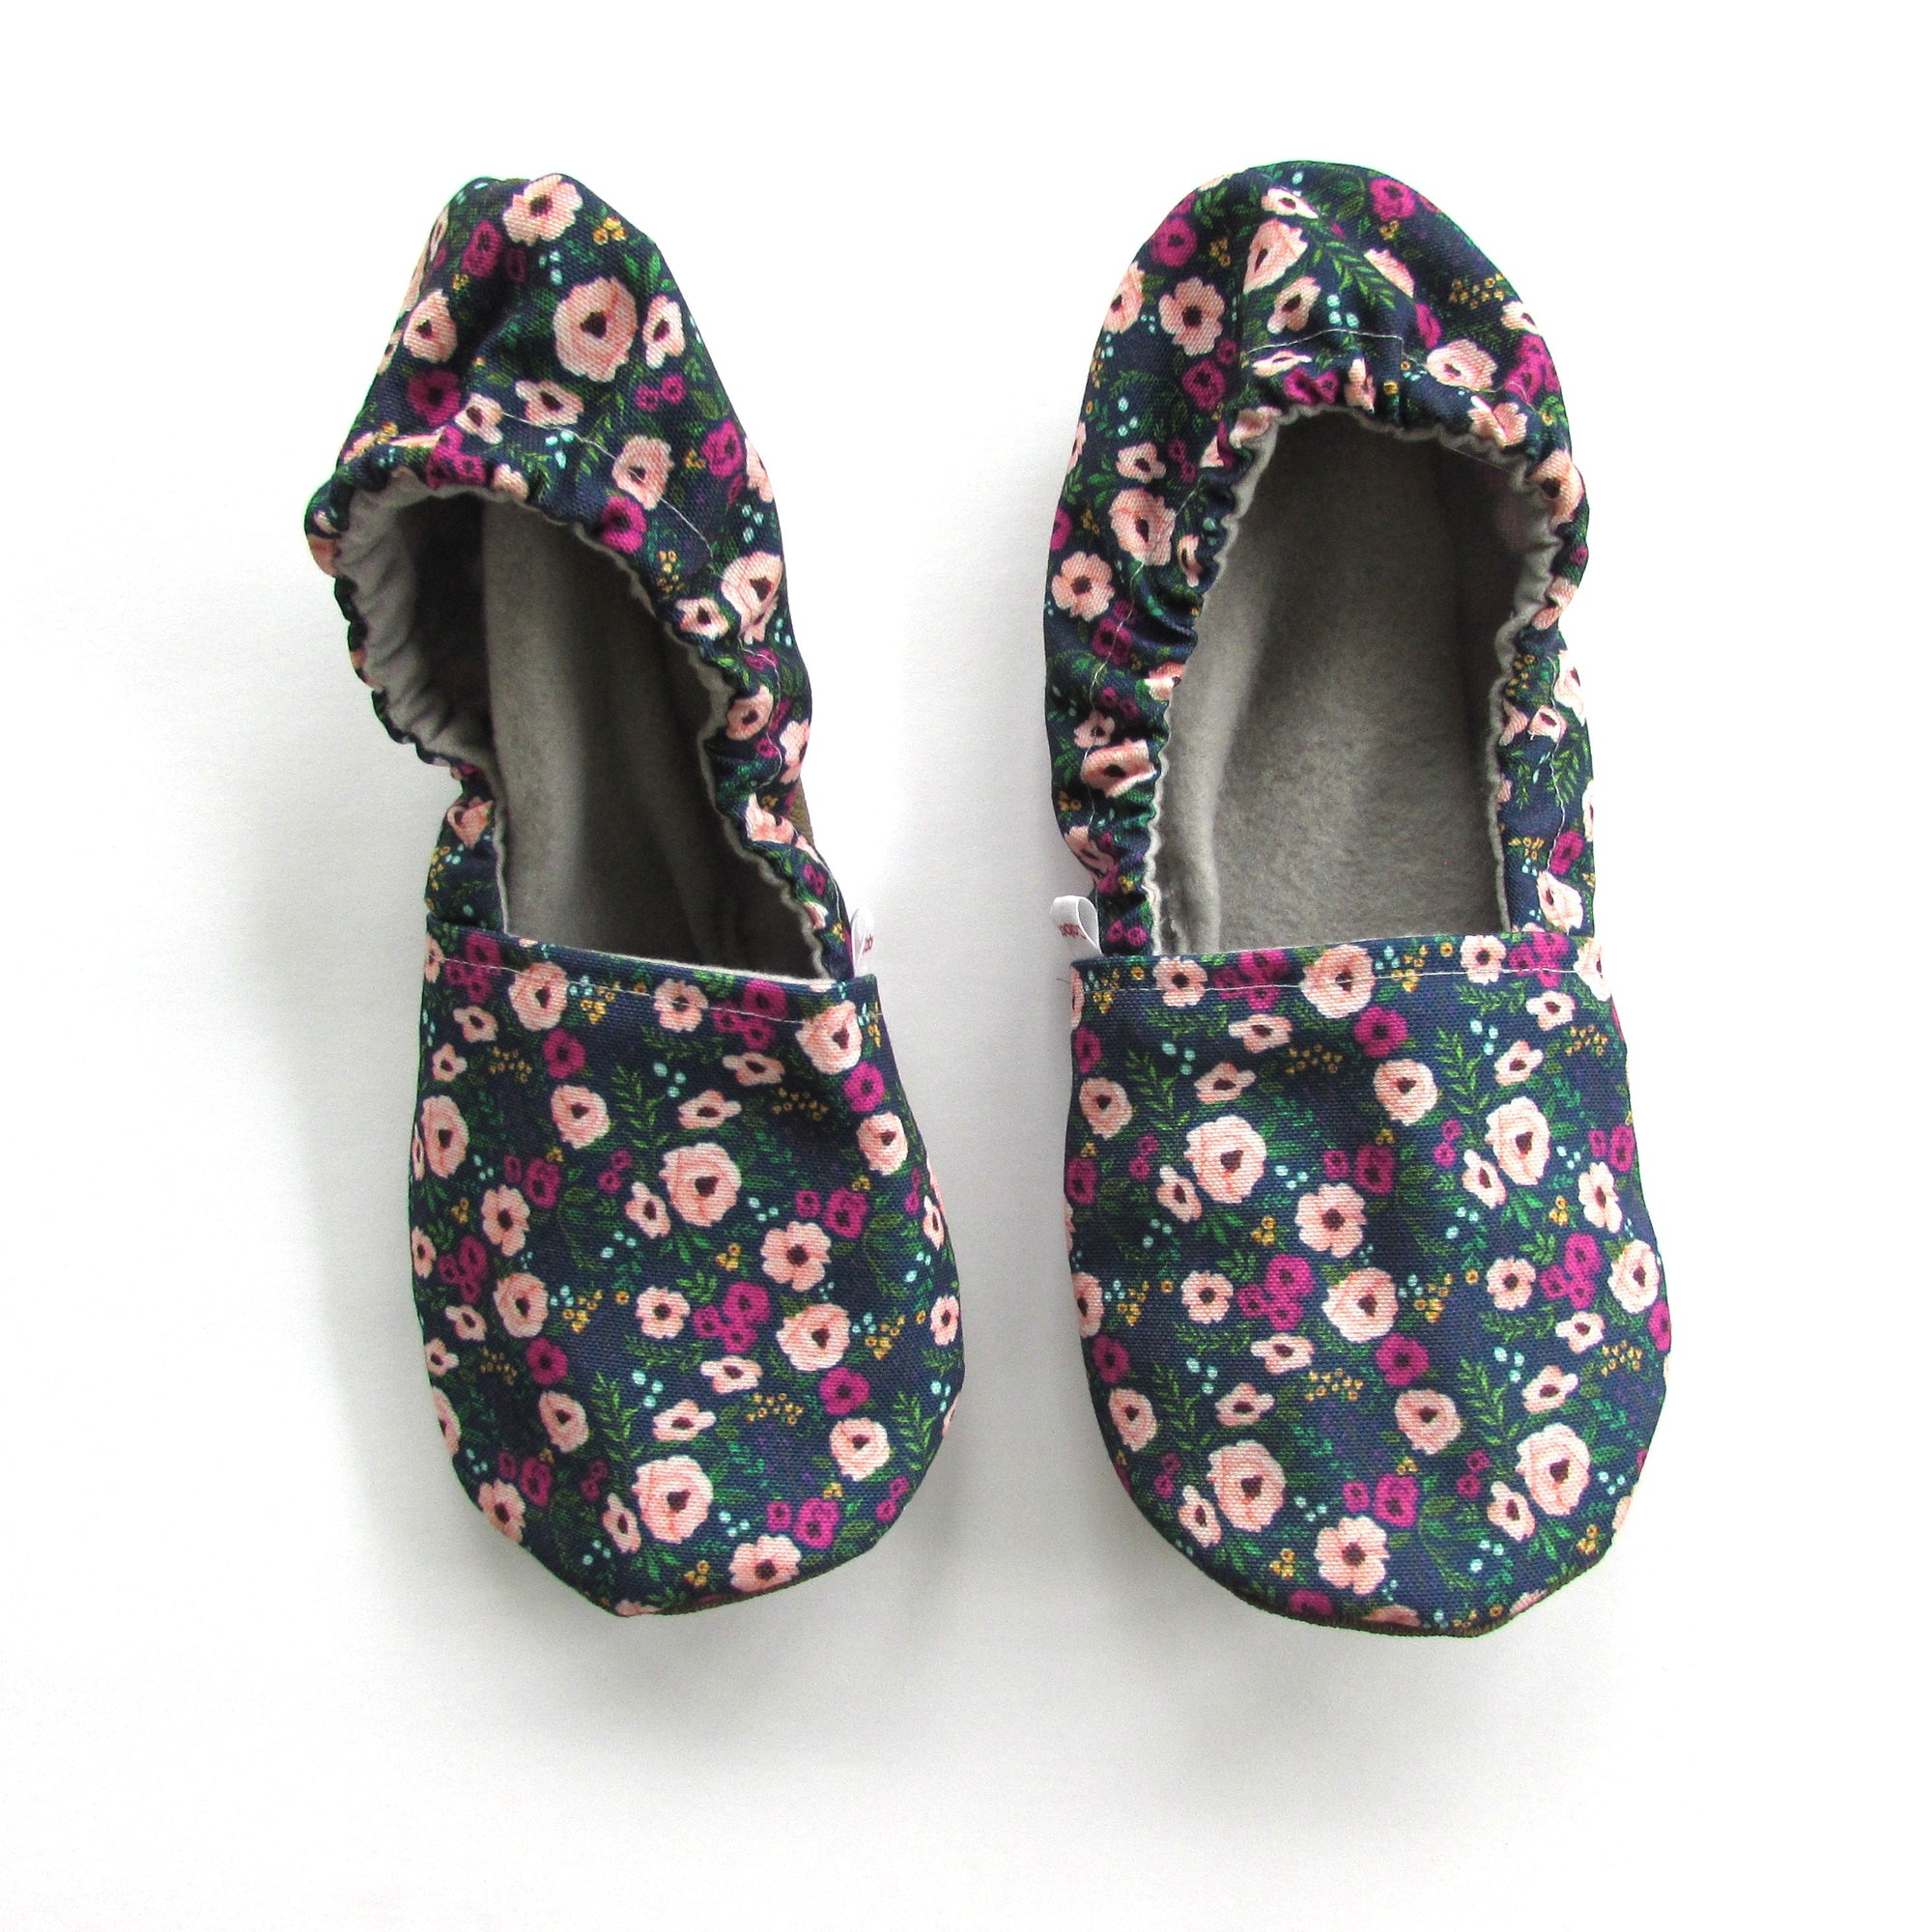 Blush Flowers Eco-Canvas Slippers - Mommy and Me - Baby Shower Gift